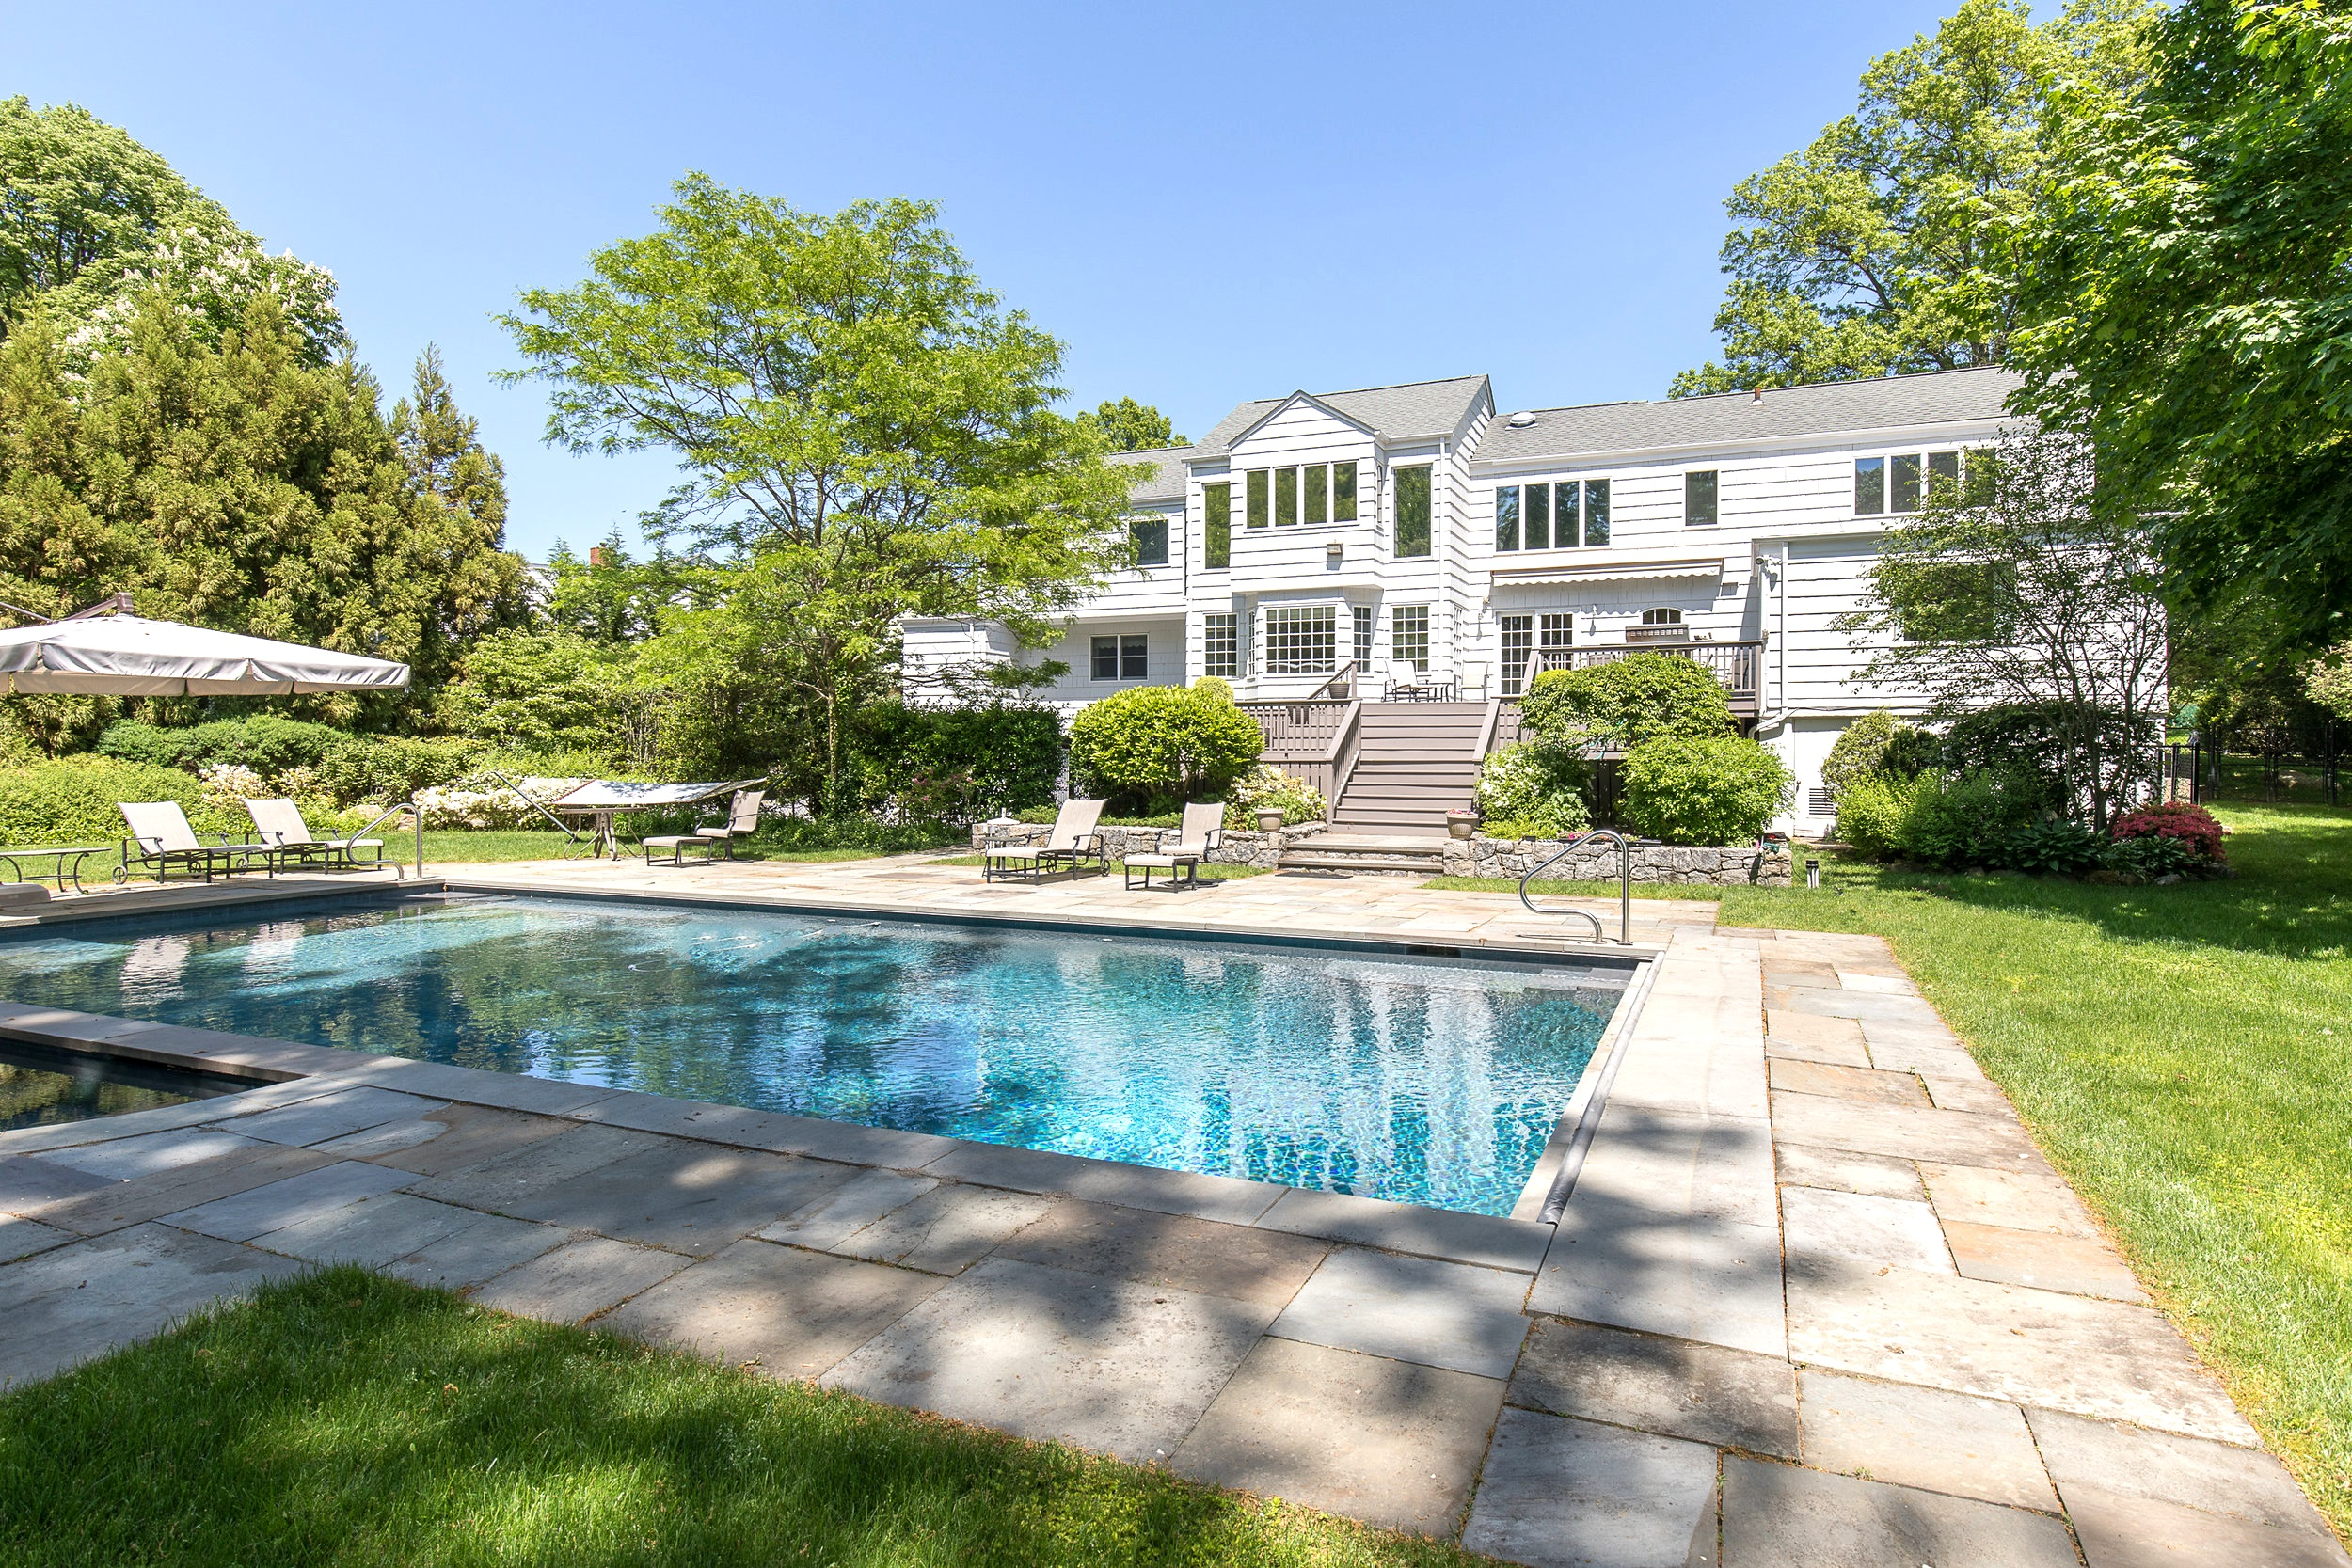 SOLD  8 Westview Lane Scarsdale, NY. Represented the Seller as the Listing Agent  (2019)